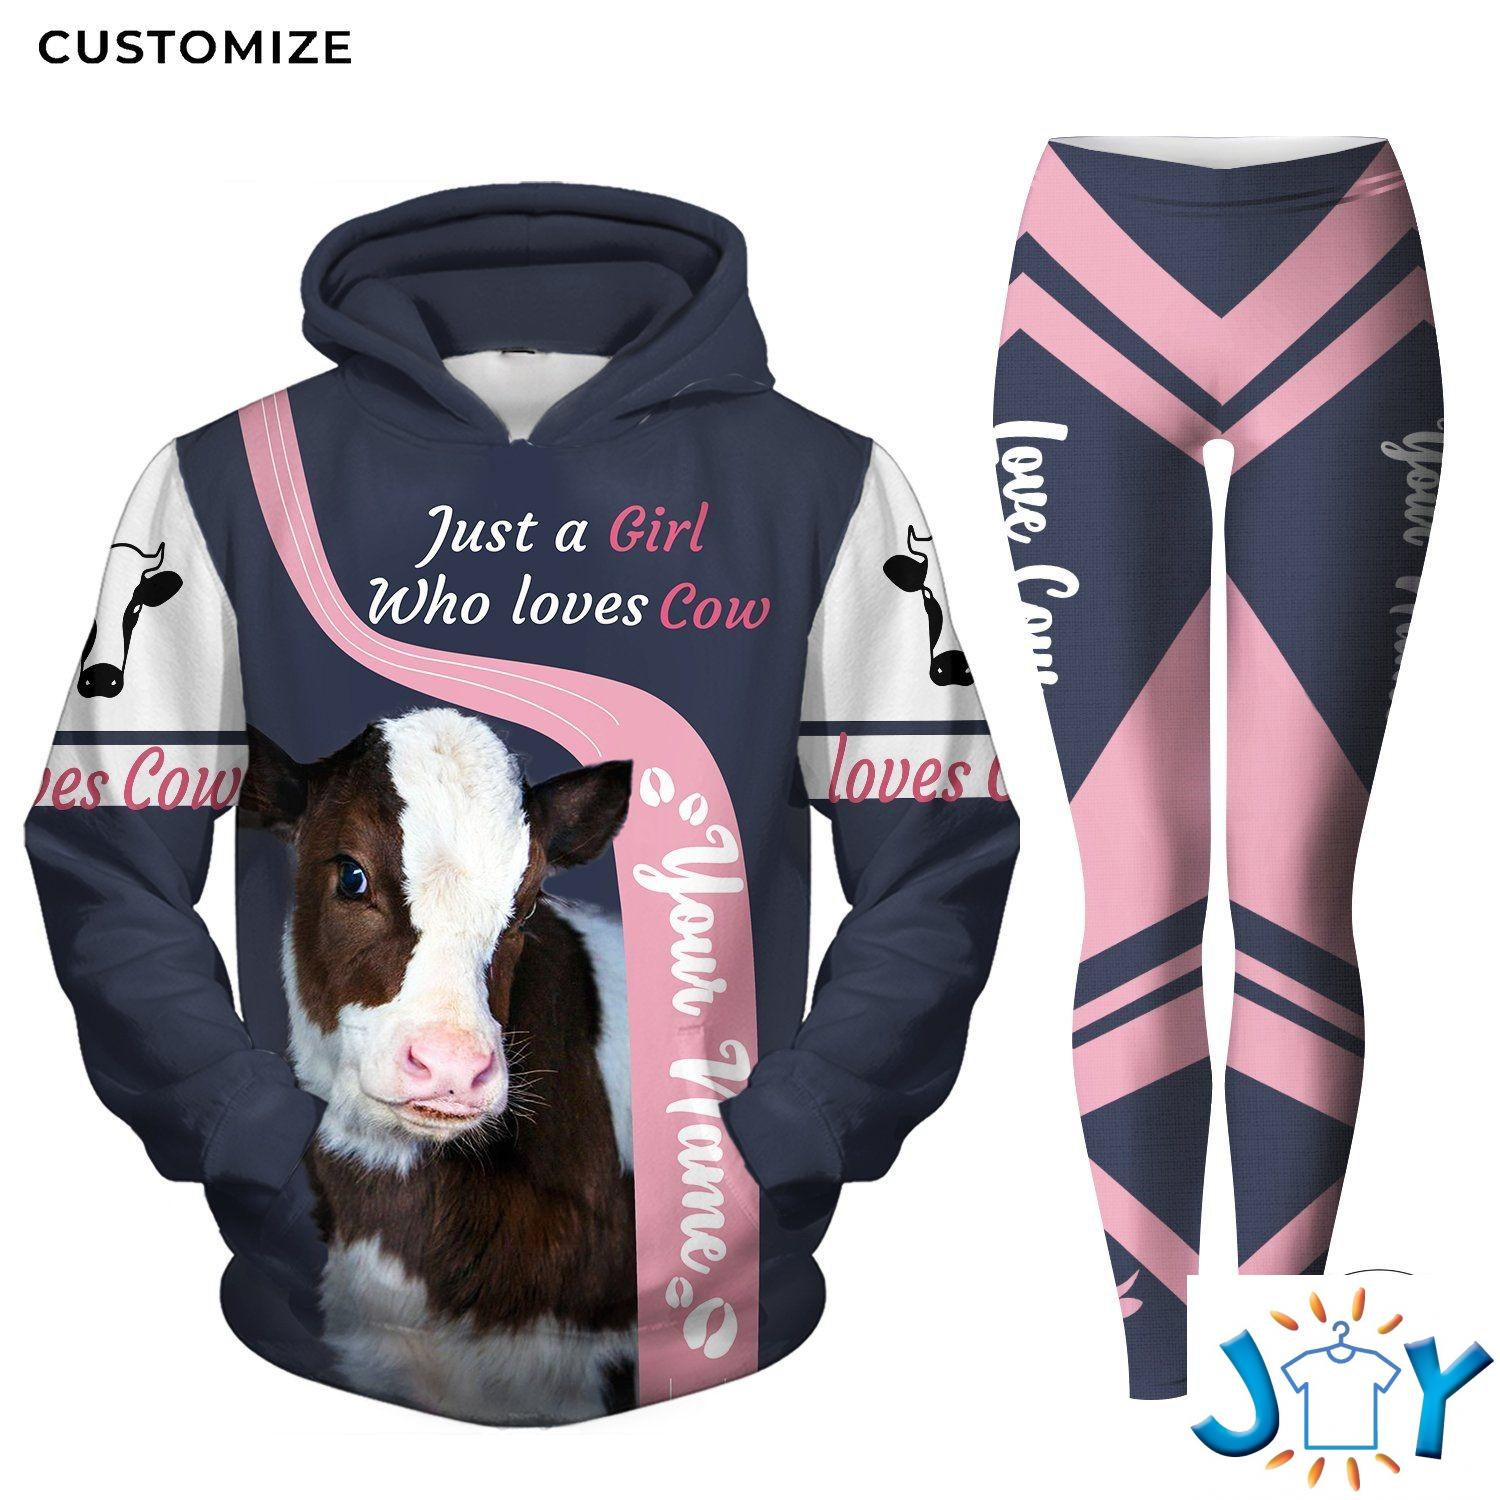 Personalized Just A Girl Who Loves Cows 3D Hoodies and Leggings